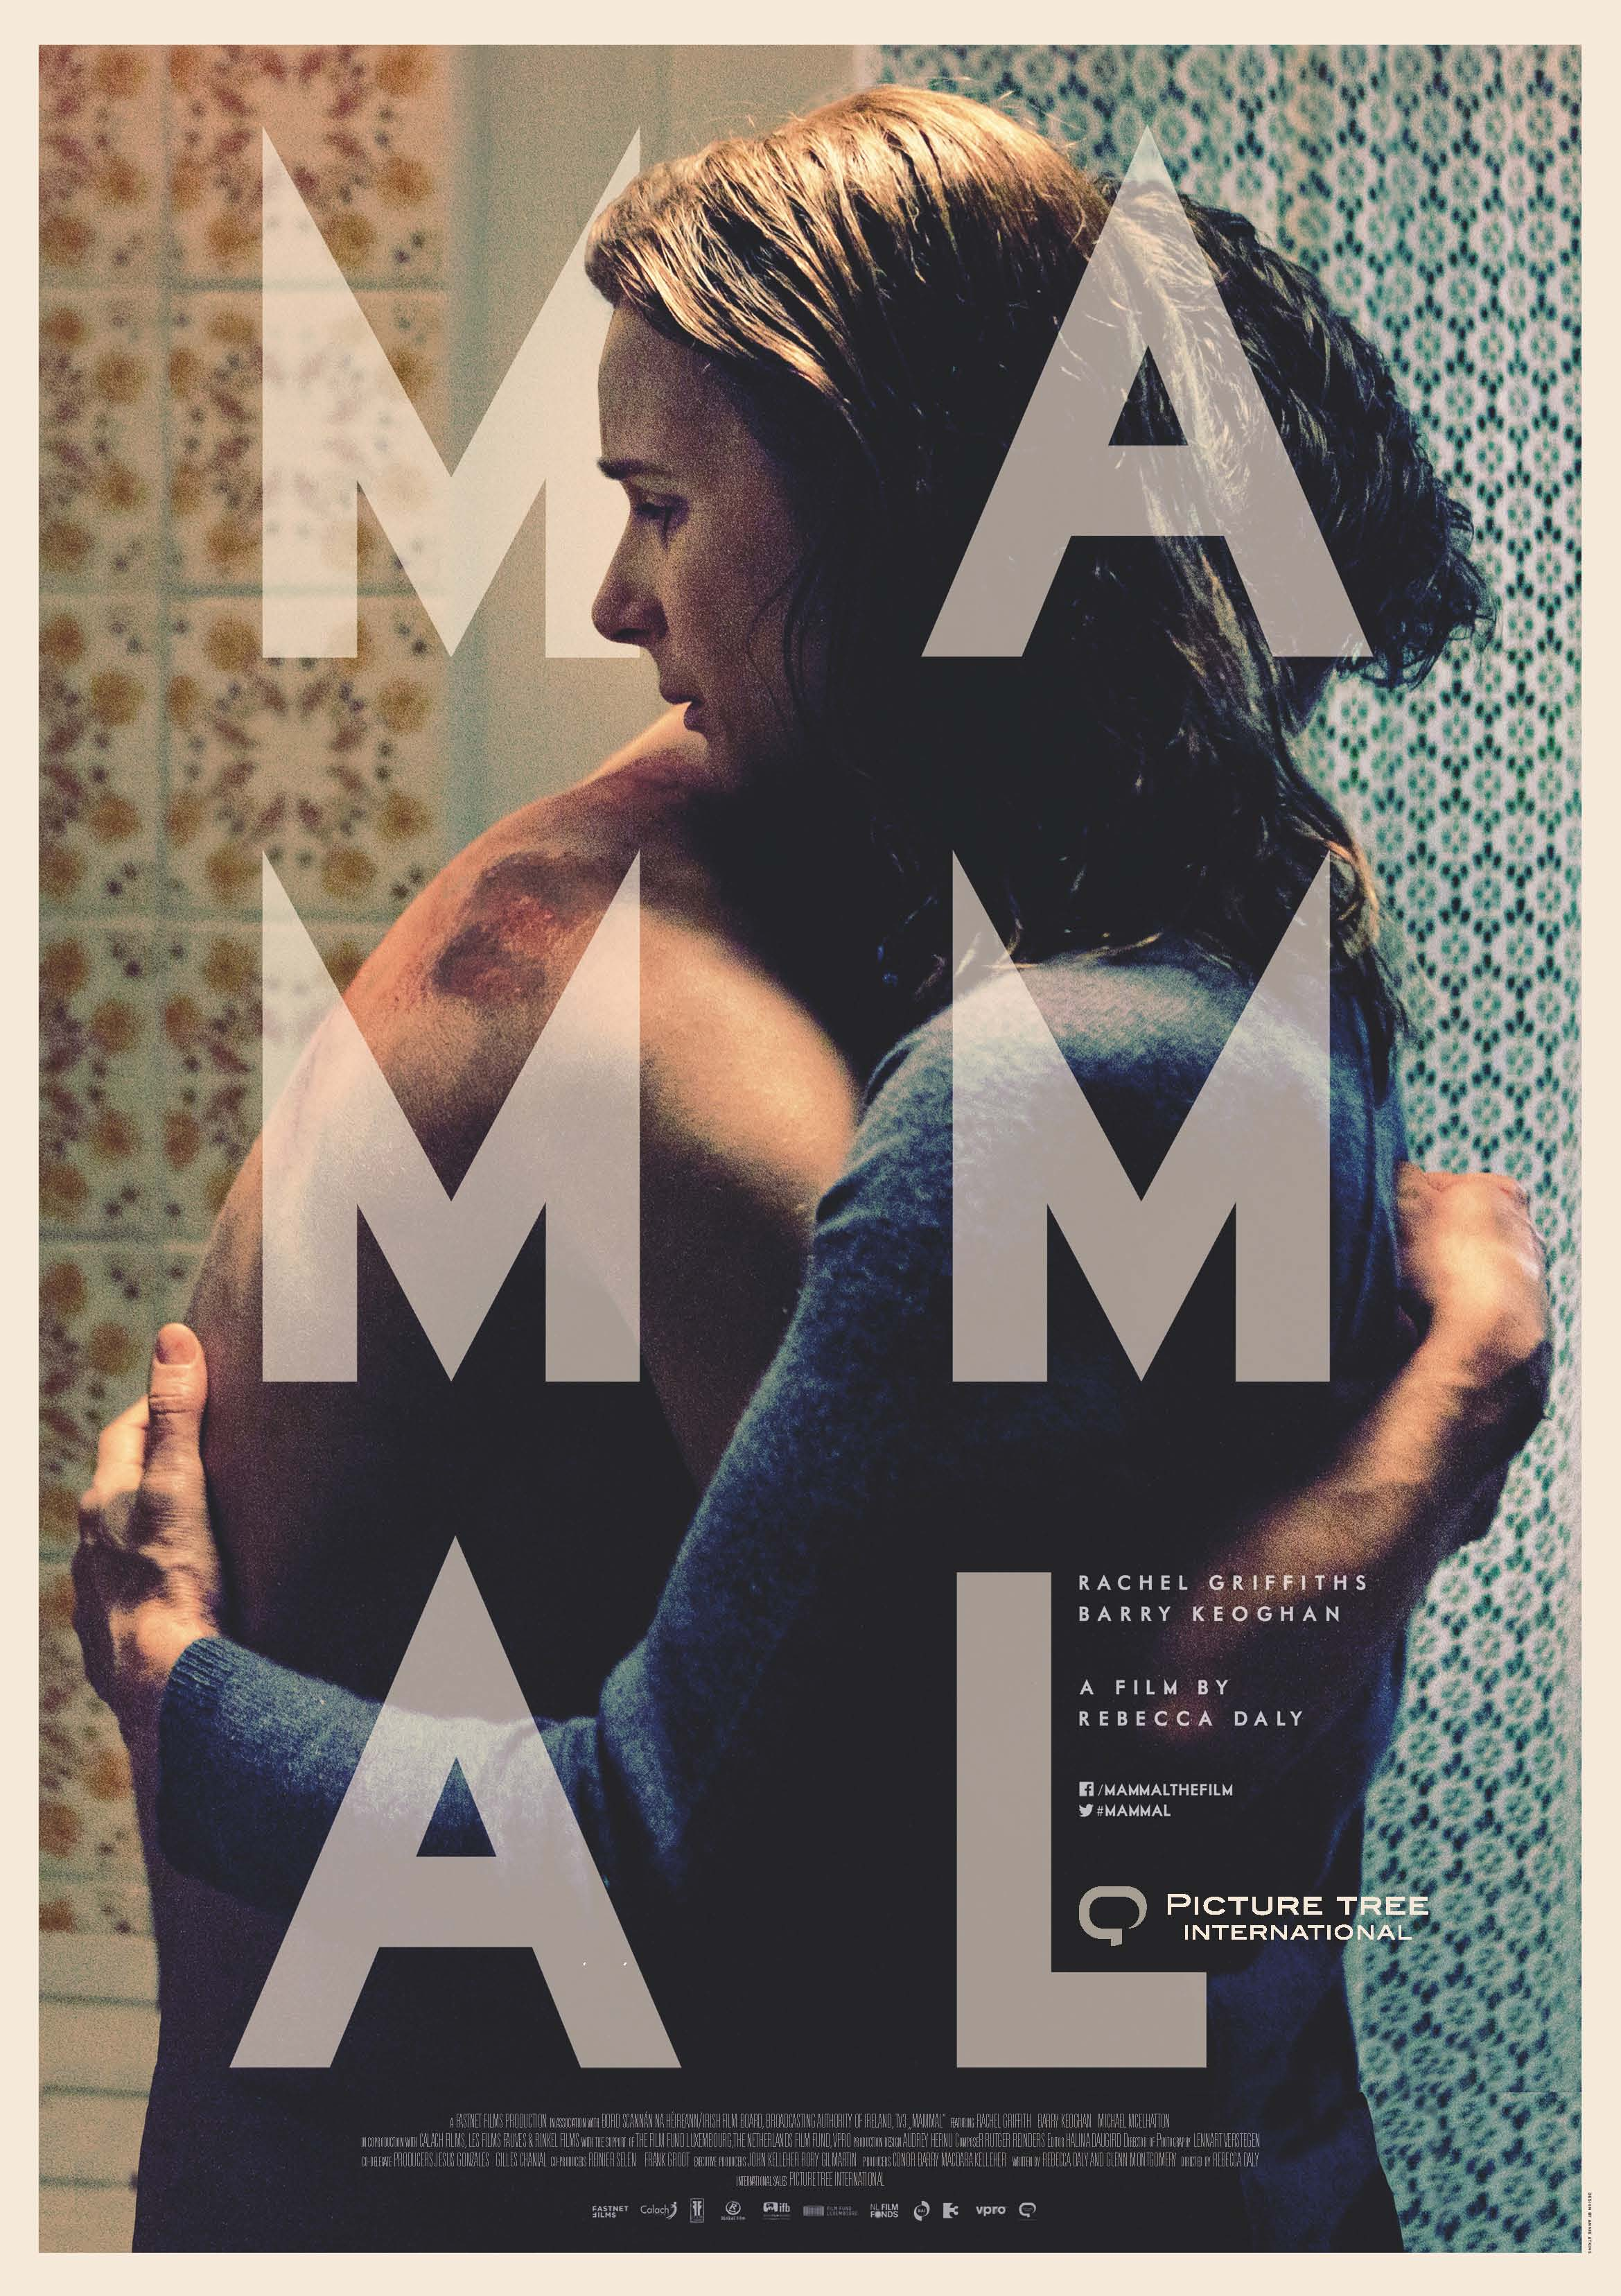 MAMMAL - Directed by Rebecca DALYScript by Rebecca DALY & Glenn MONTGOMERYWith Rachel GRIFFITHS, Barry KEOGHAN & Michael MCELHATTONYear: 2015Original Version: EnglishGenre: DramaRunning Time: 99minProduction companies: LES FILMS FAUVES (LU), CALACH FILMS (LU), FASTNET FILMS (IE) & Rinkel Film BV & Reinier Selen (NL)